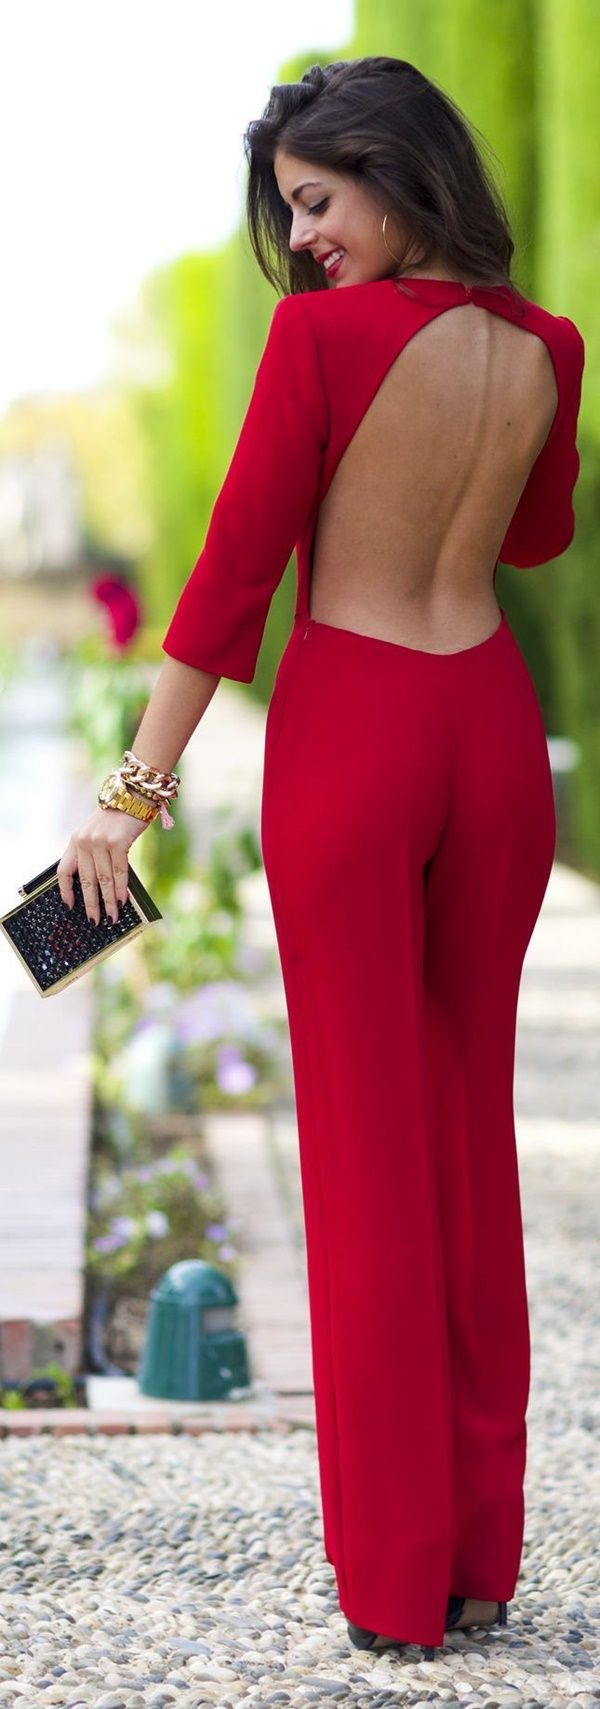 50 Hot Jumpsuit Outfit Ideas For Girls 2016 | Clothes High Street Fashion And Girls